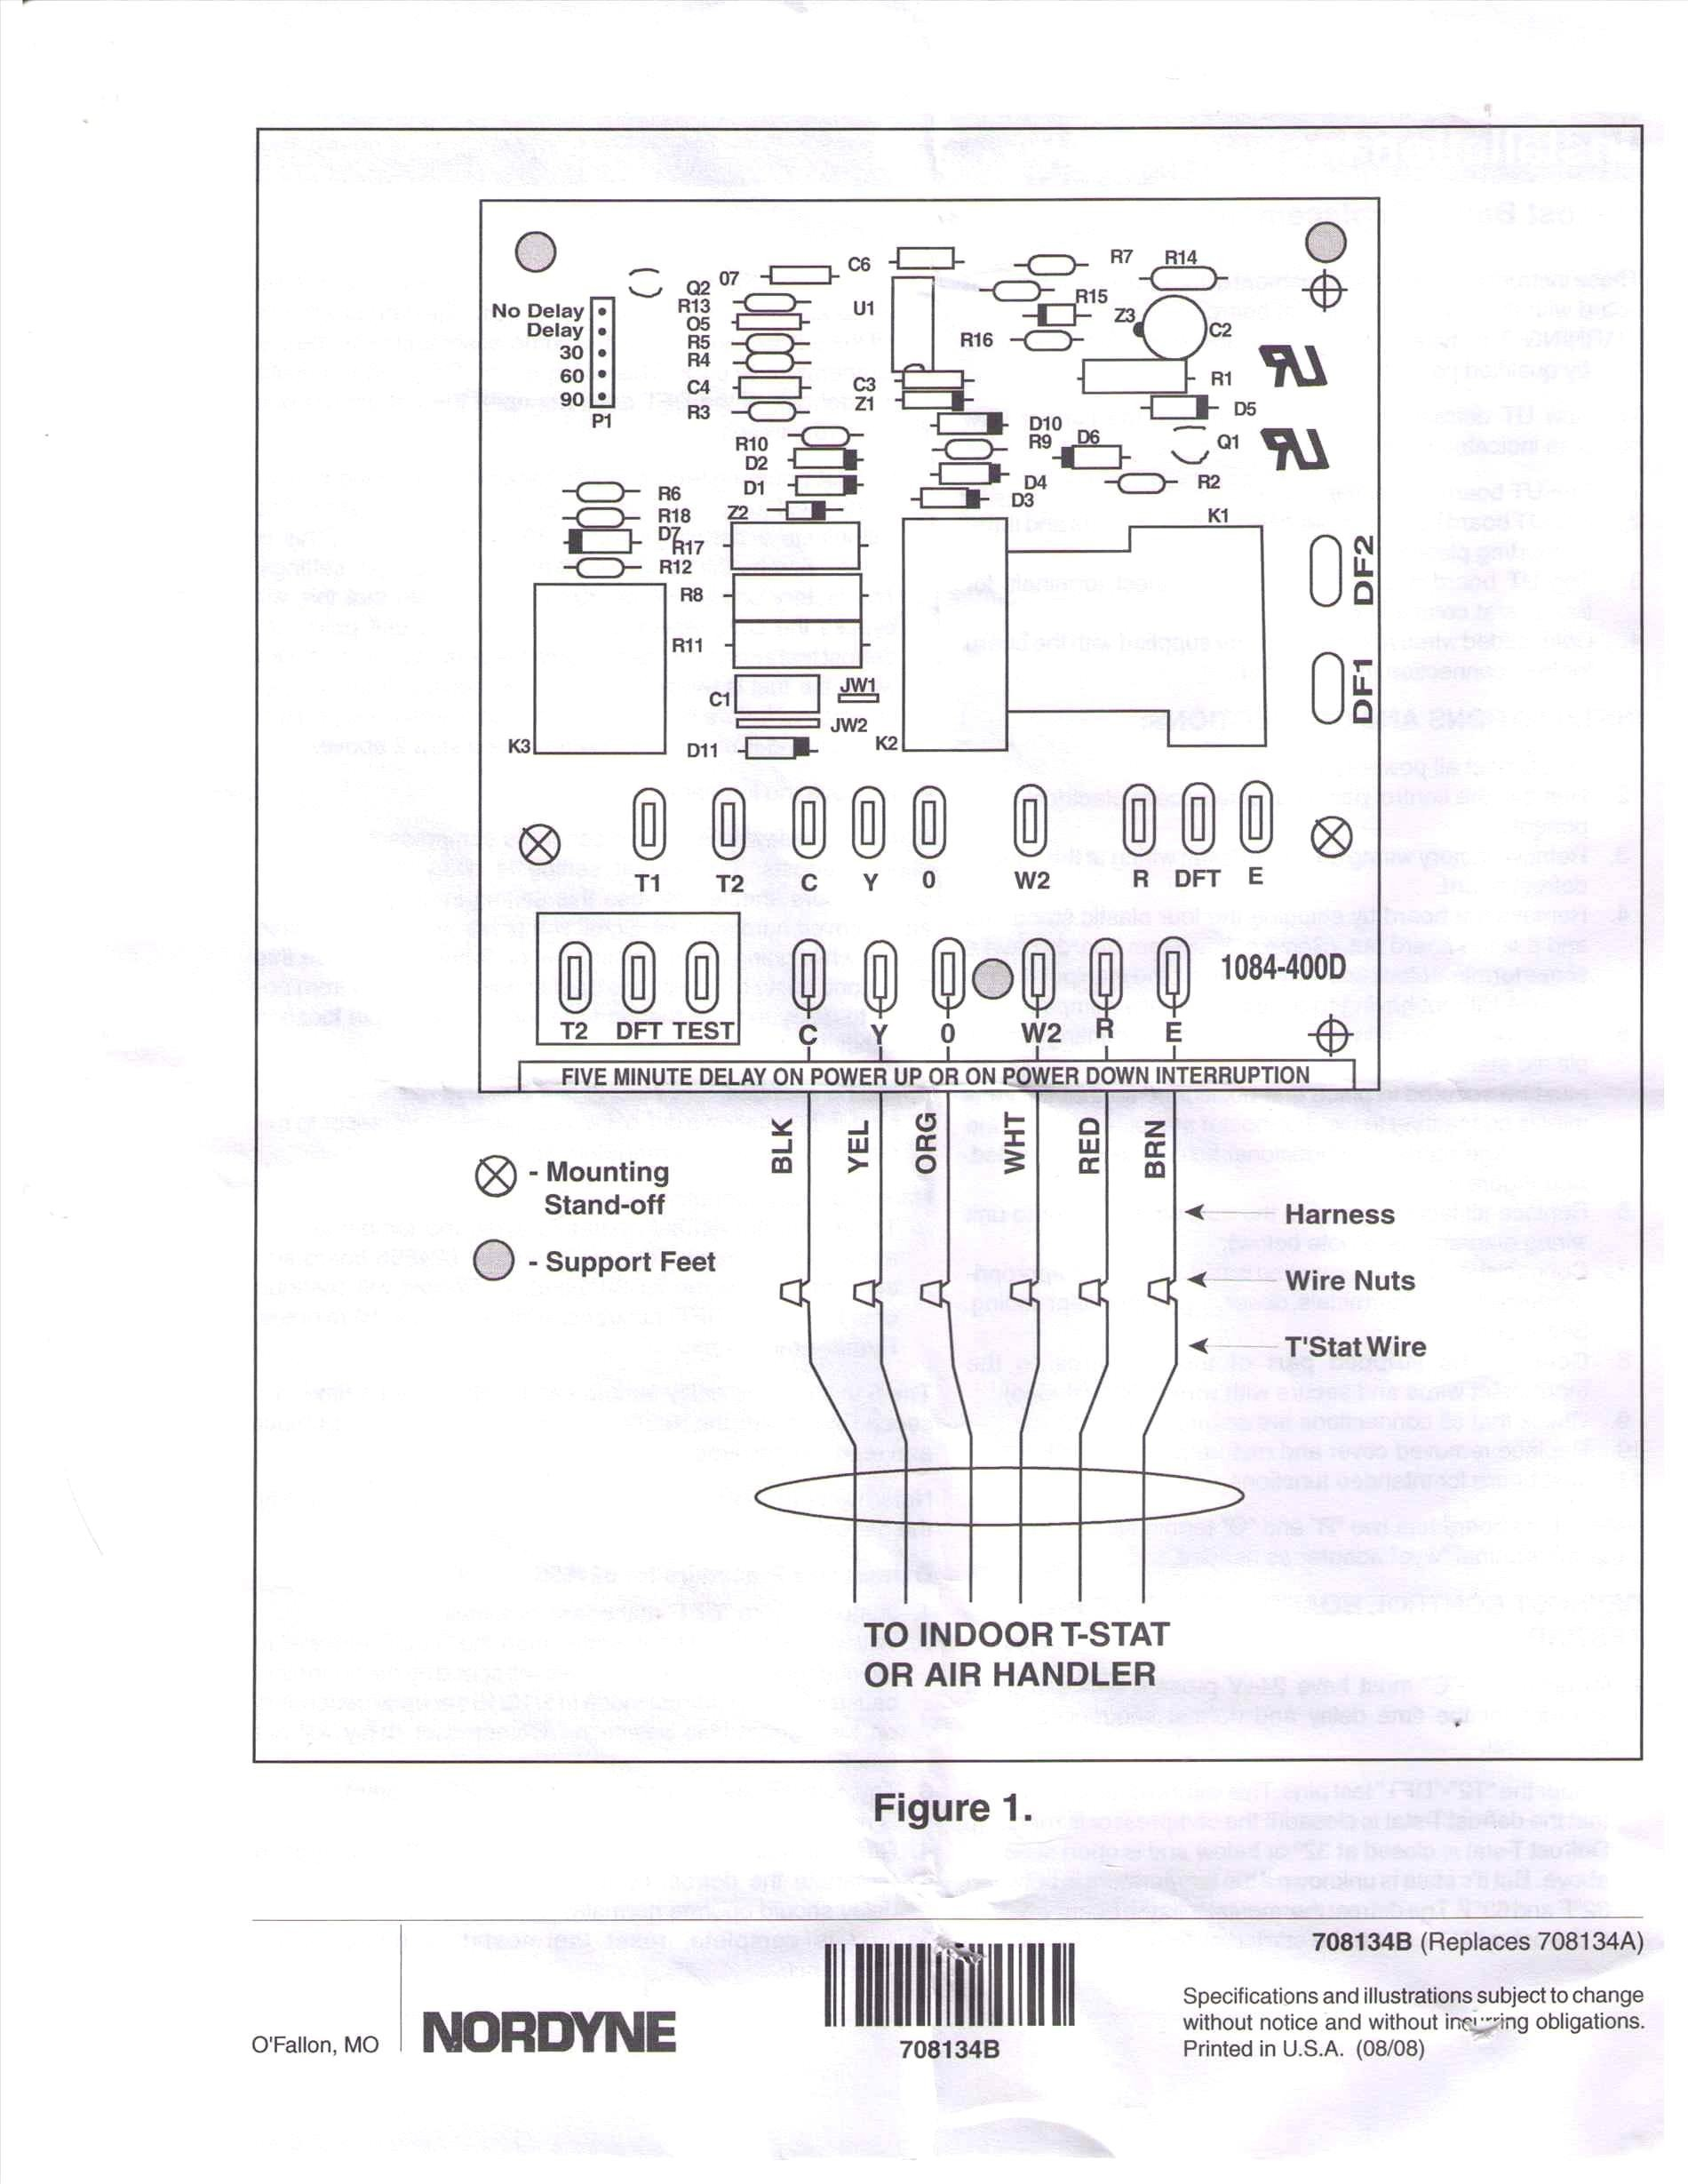 Wiring Diagram For Totaline Thermostat : Totaline thermostat wiring diagram my